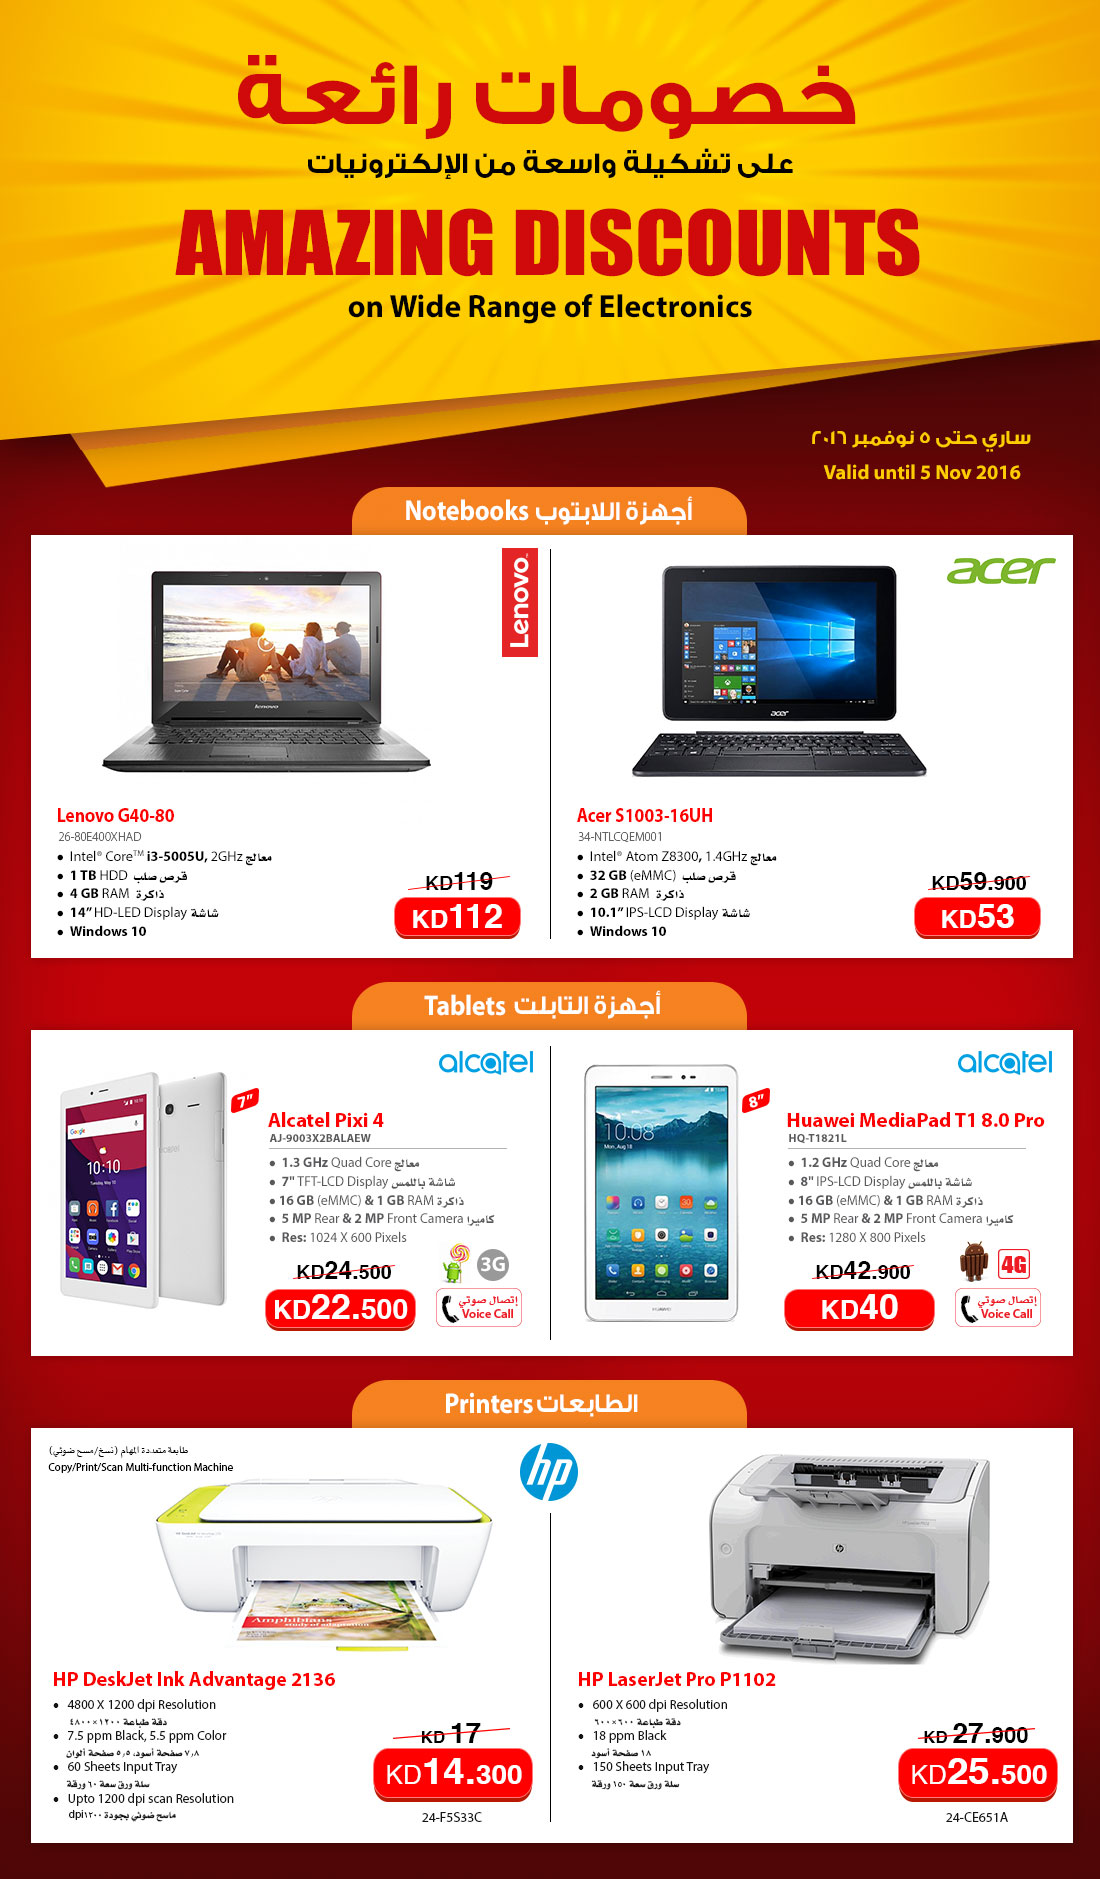 amazing-discounts-on-wide-range-of-electronics-kuwait